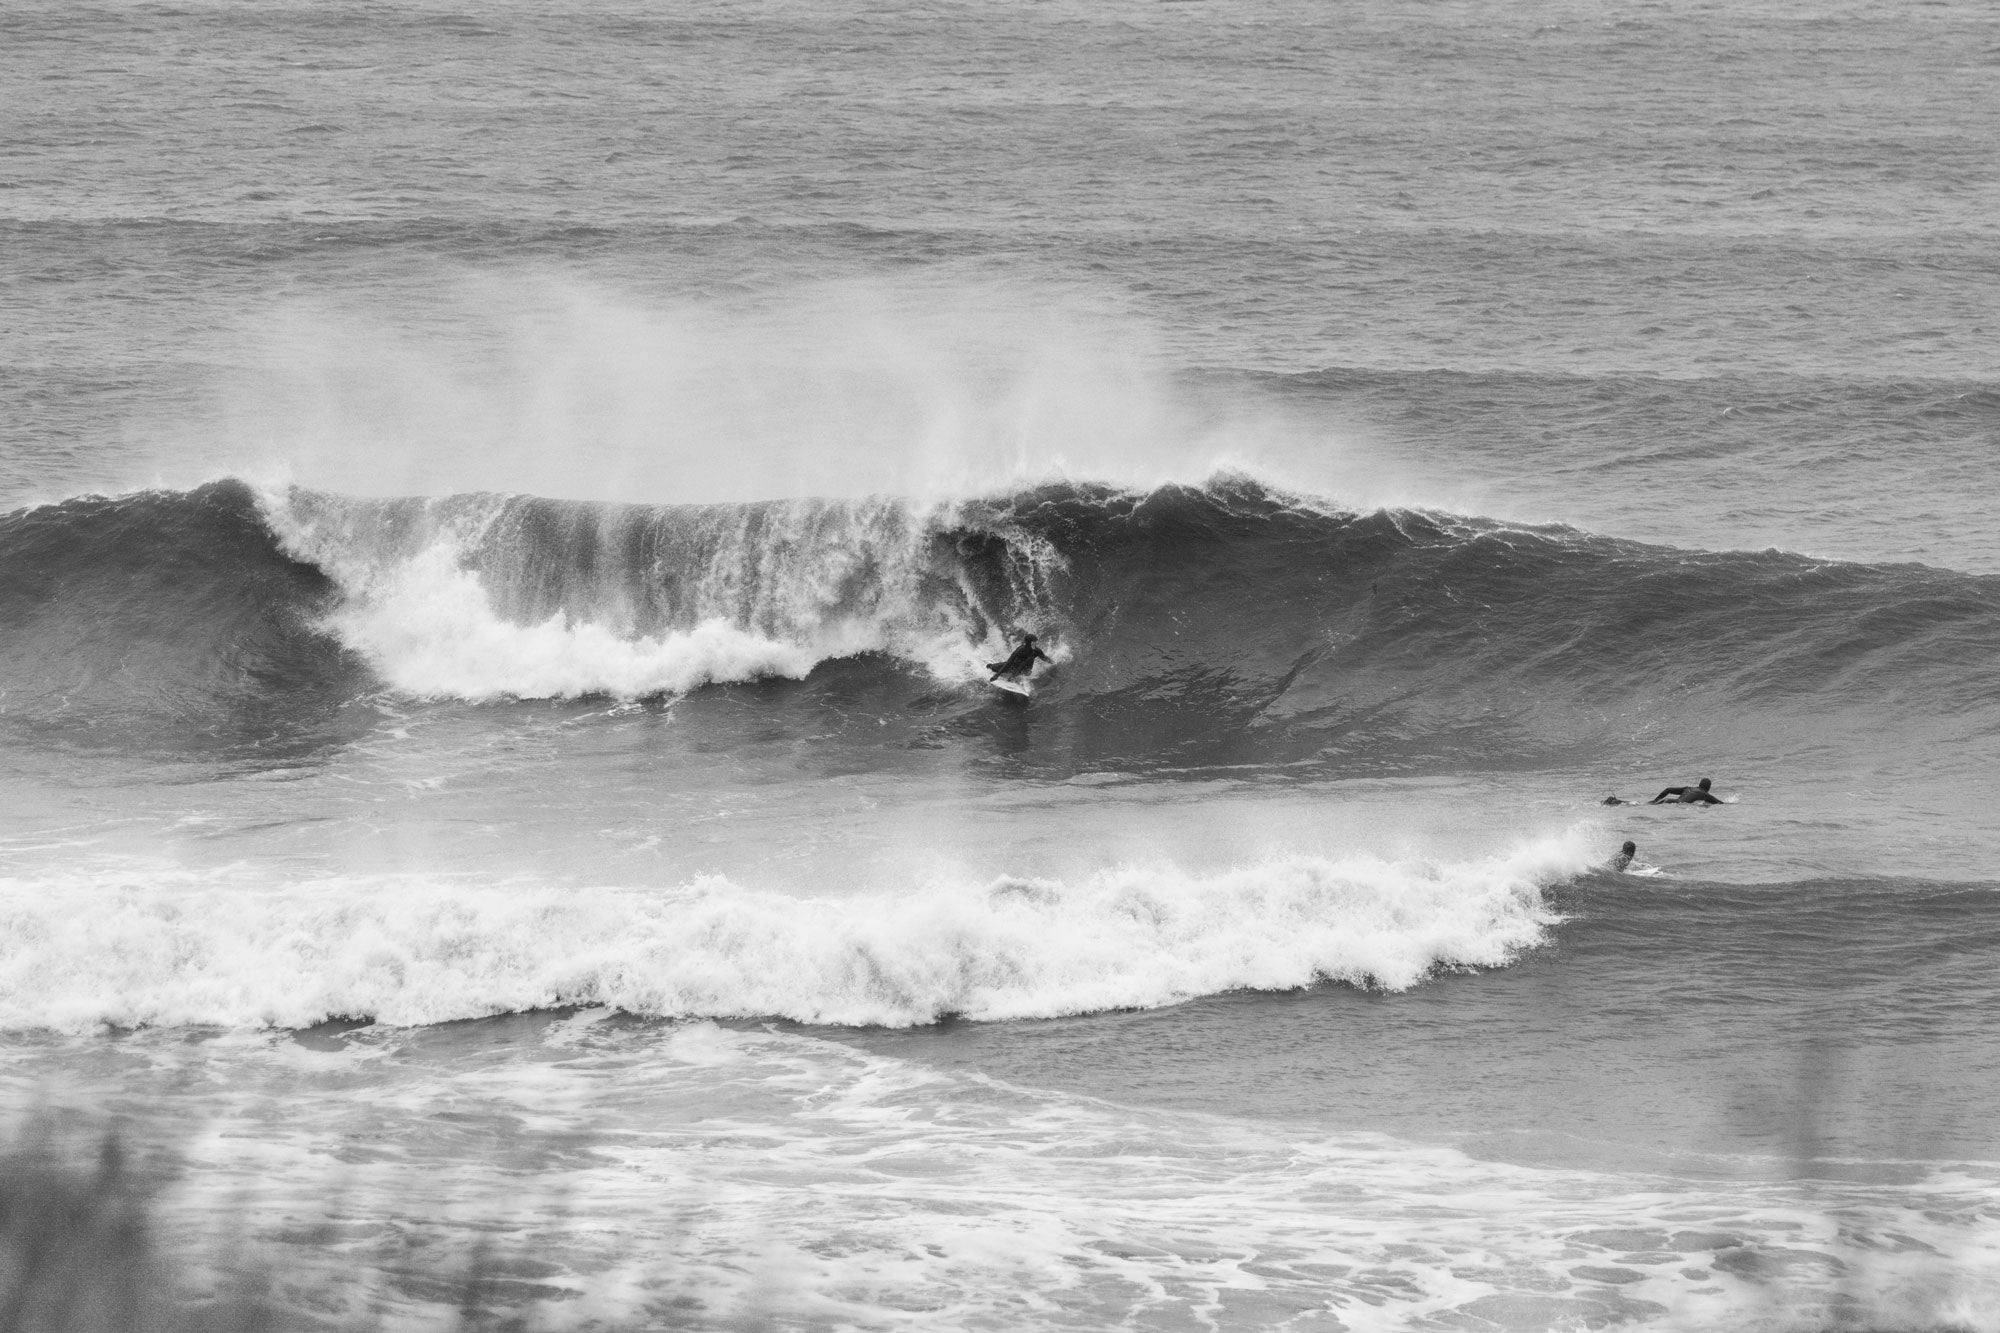 Sally McGee surfing in the cold waters of the North East